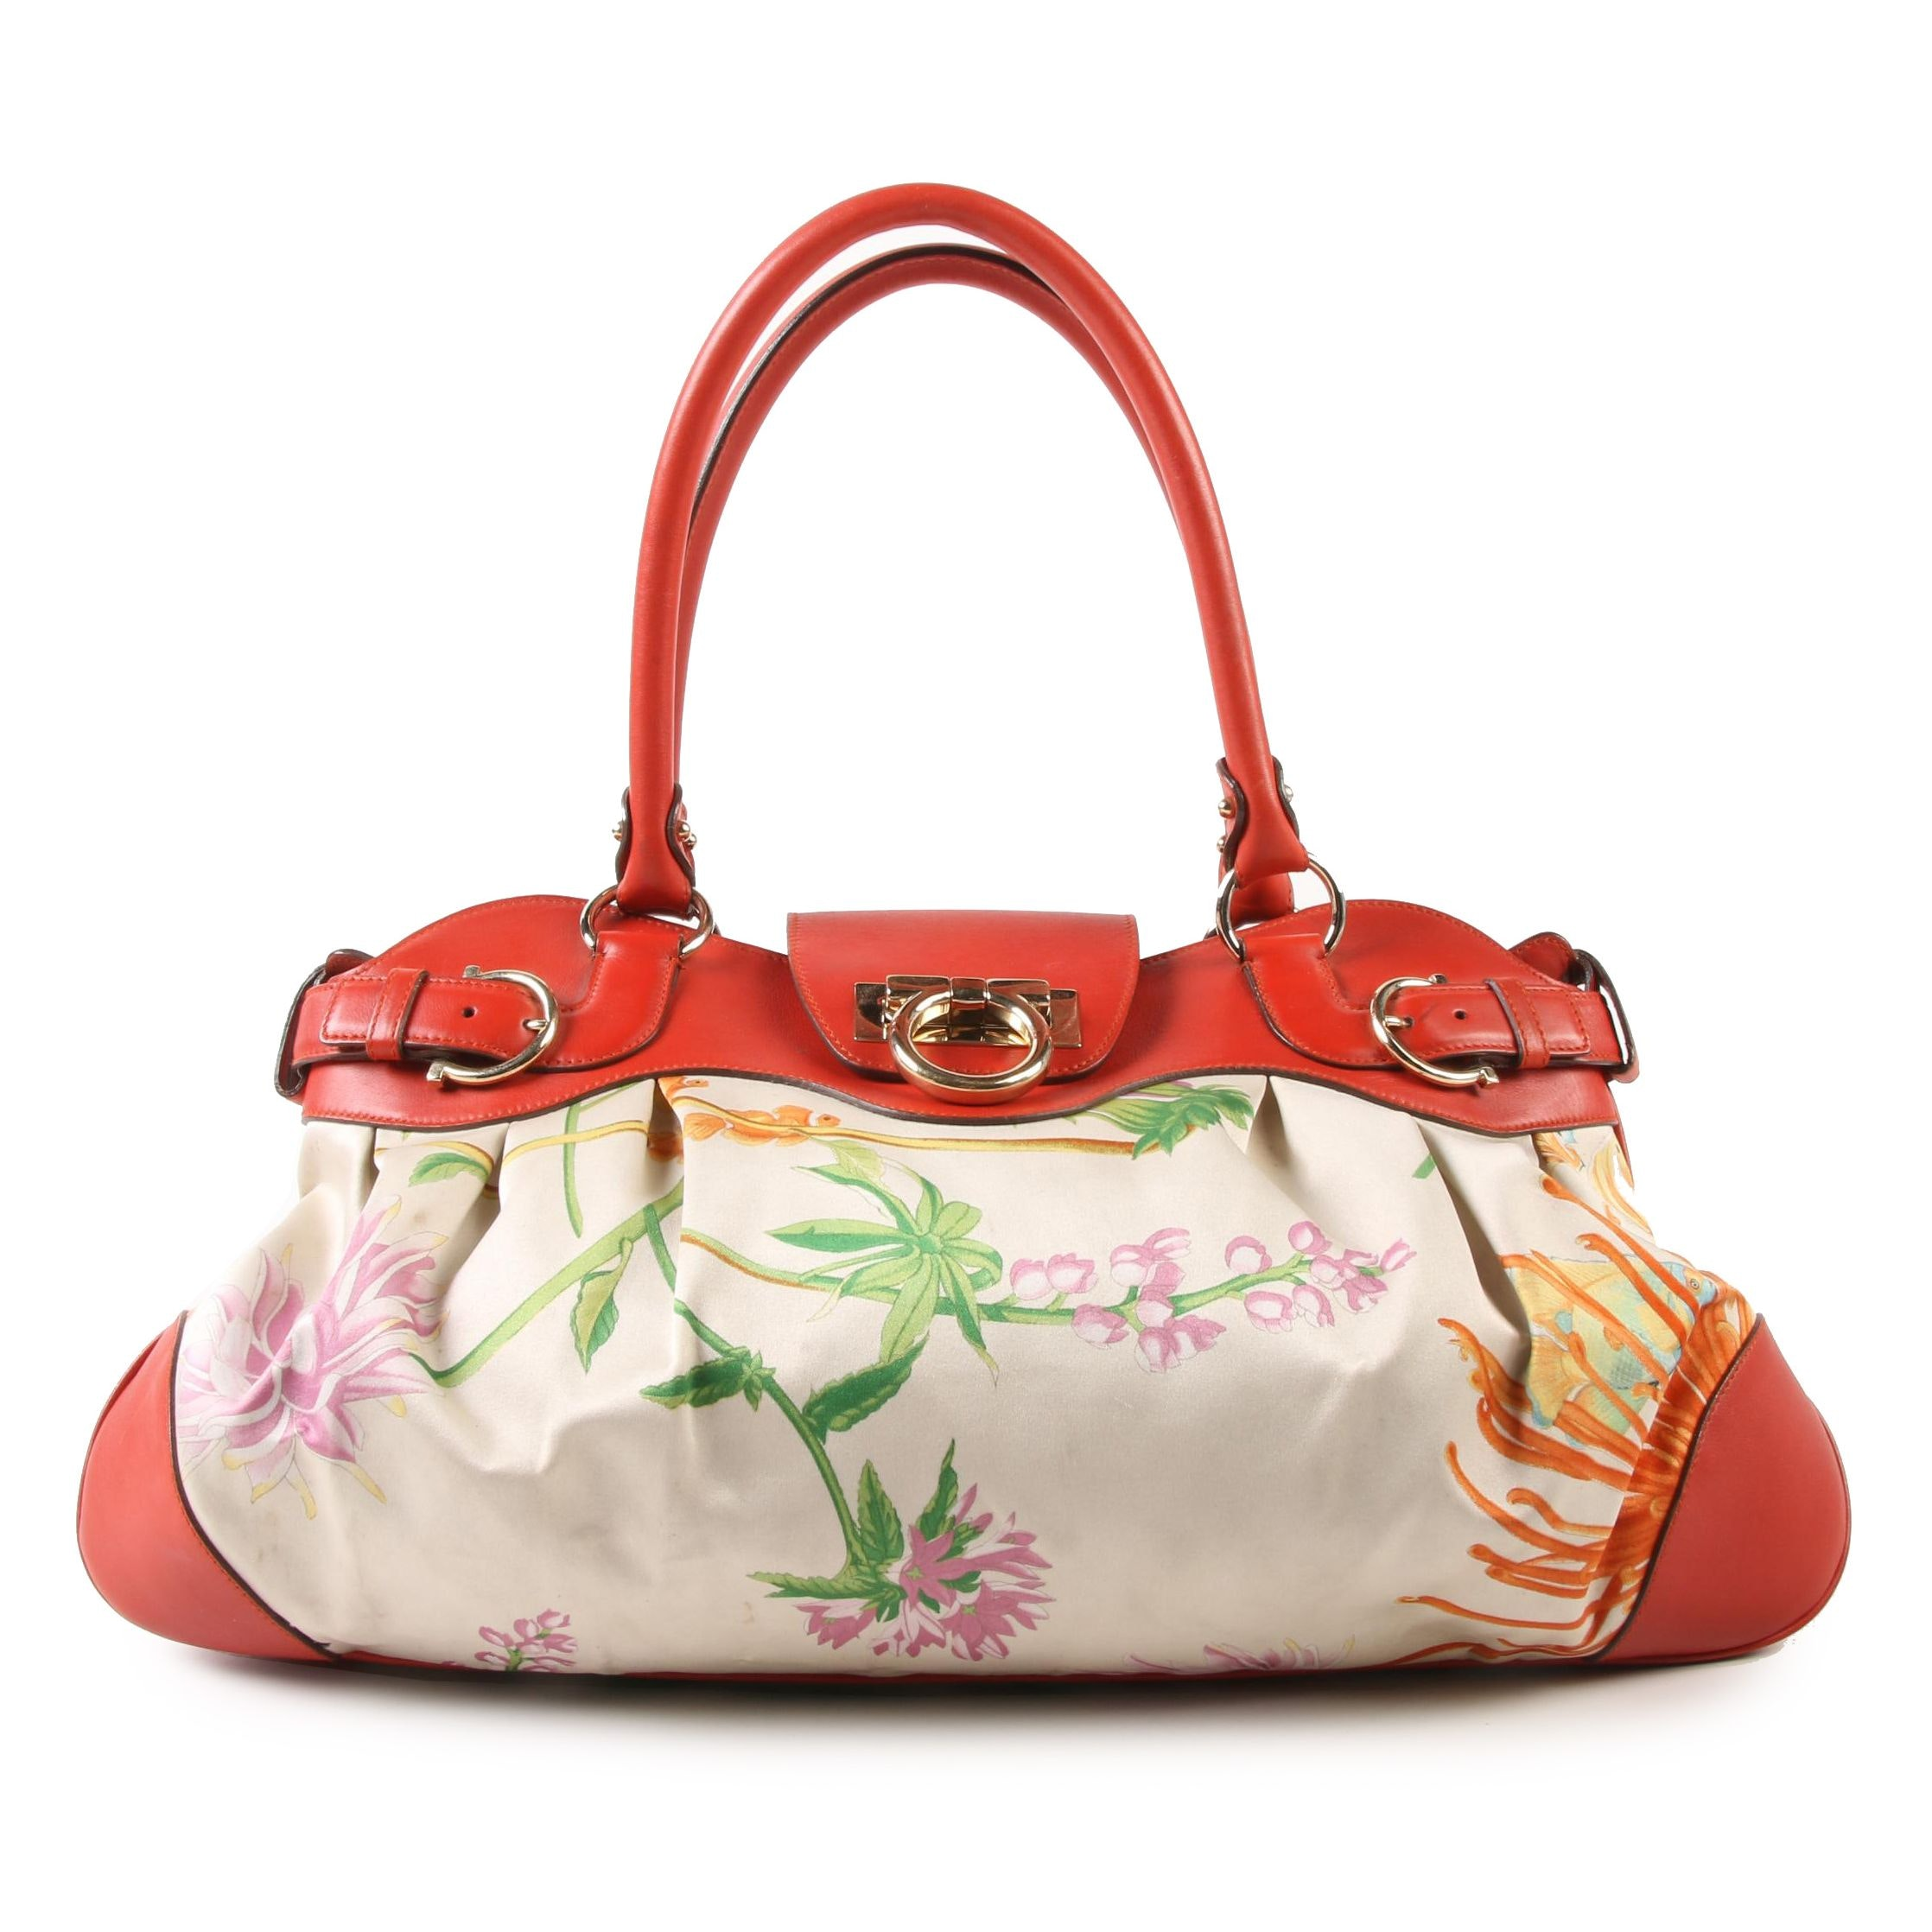 Salvatore Ferragamo Marisa Bag in Red-Orange Leather and Satin Floral Fish Print